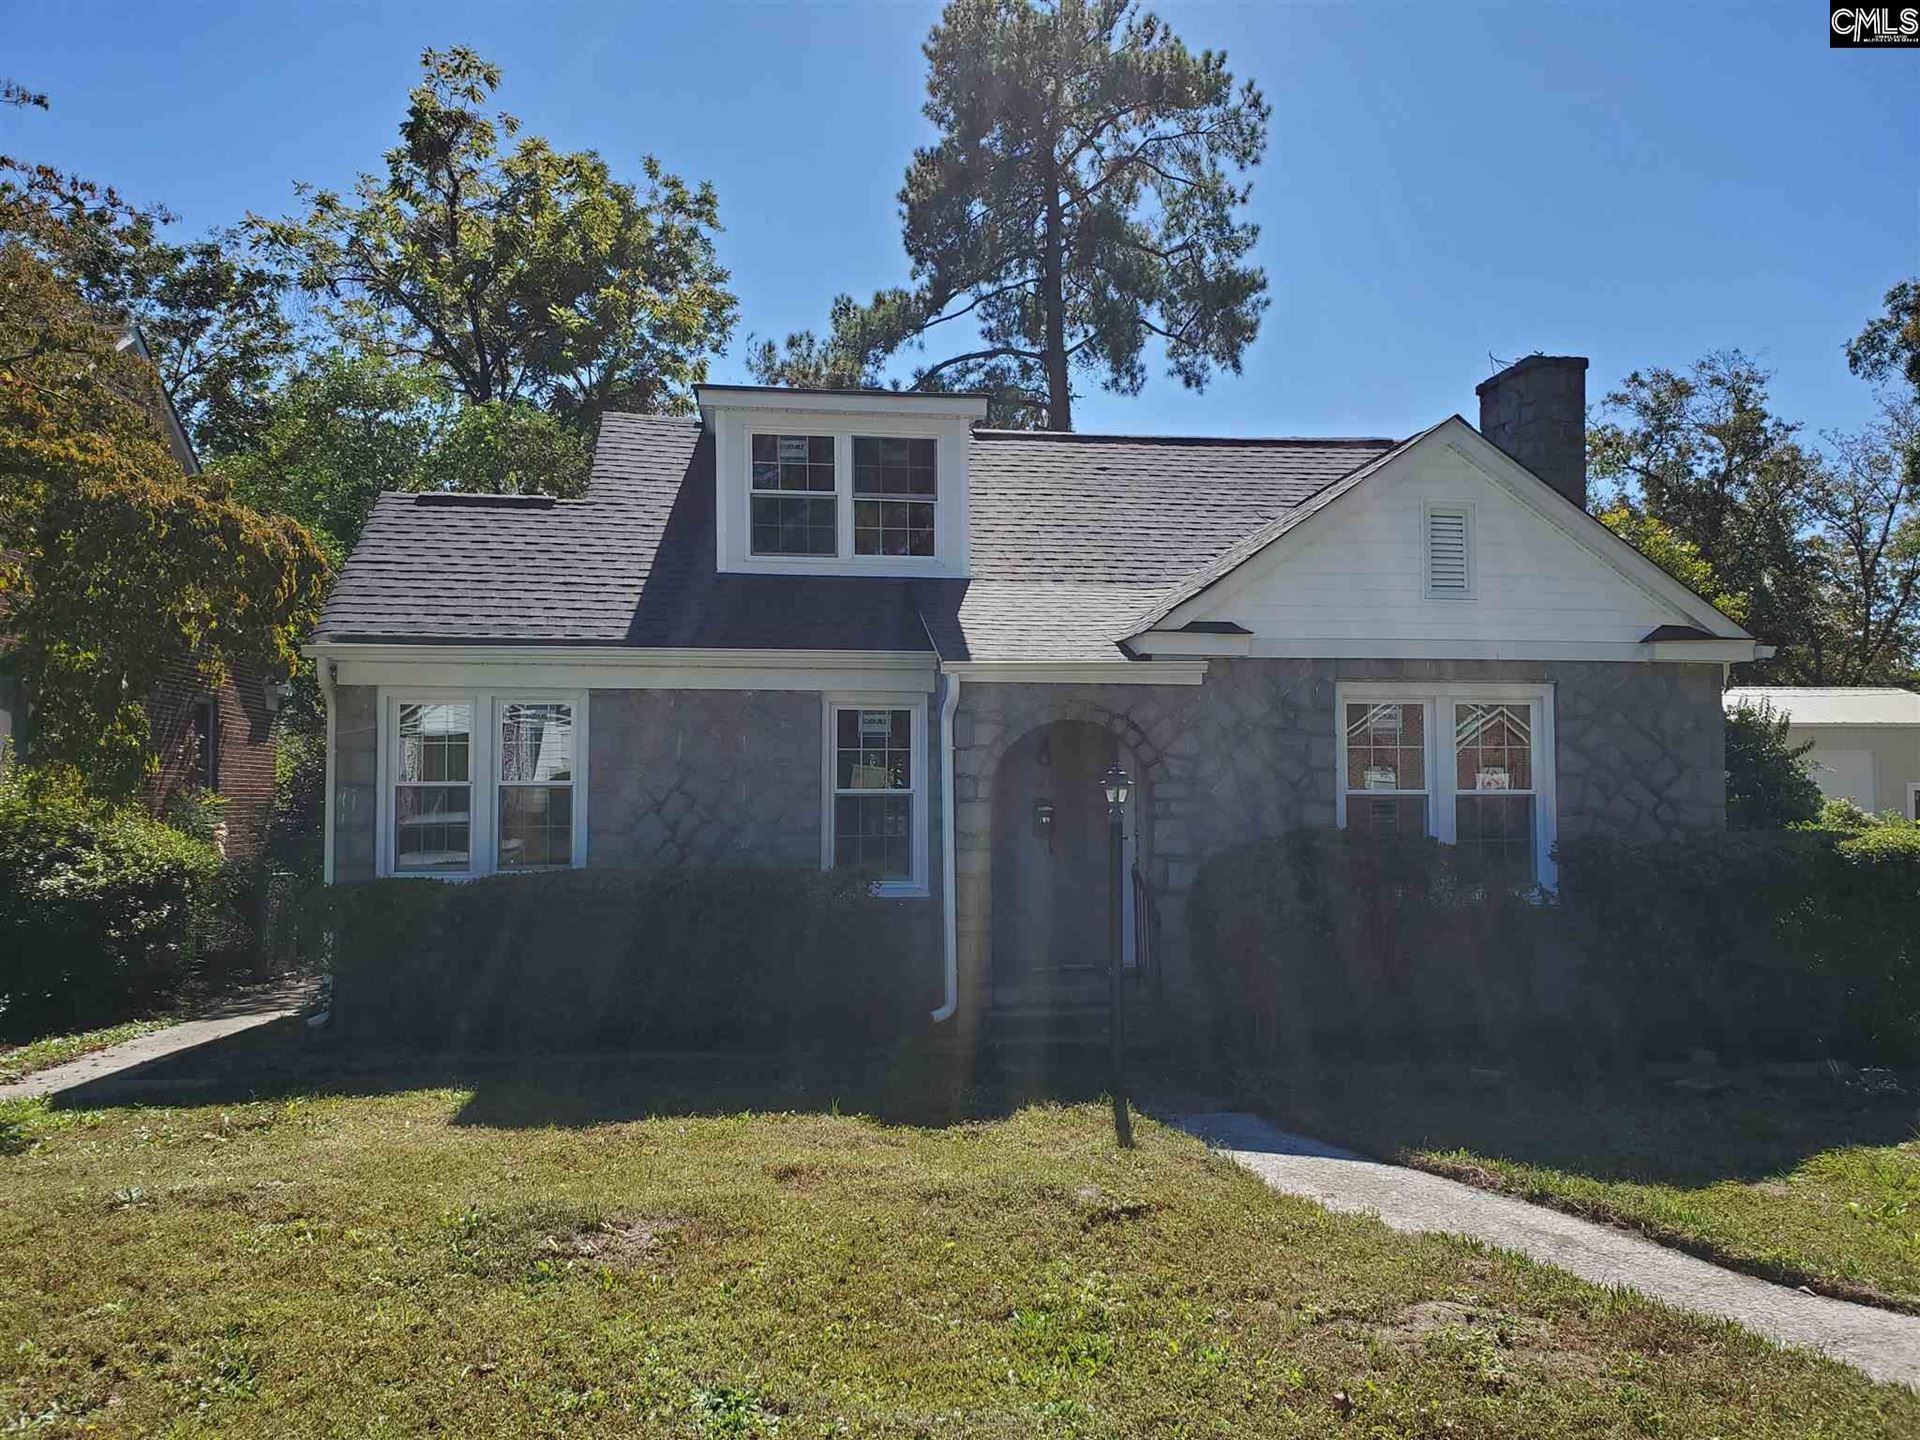 Photo for 709 M Avenue, Cayce, SC 29033 (MLS # 504436)